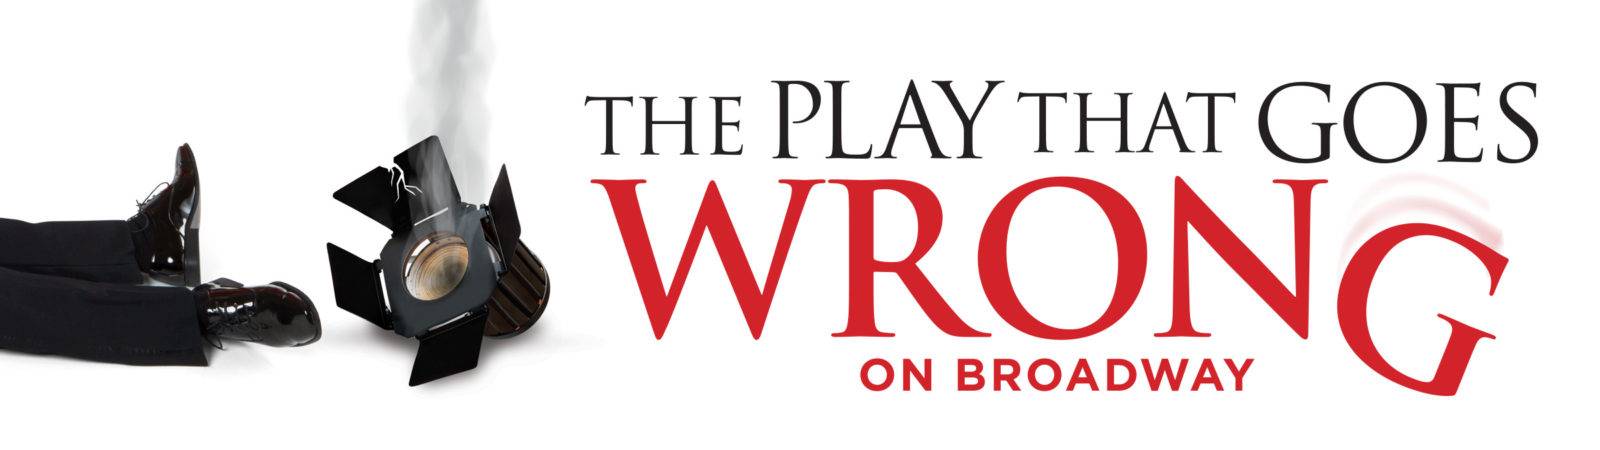 The Play That Goes Wrong Broadway Direct